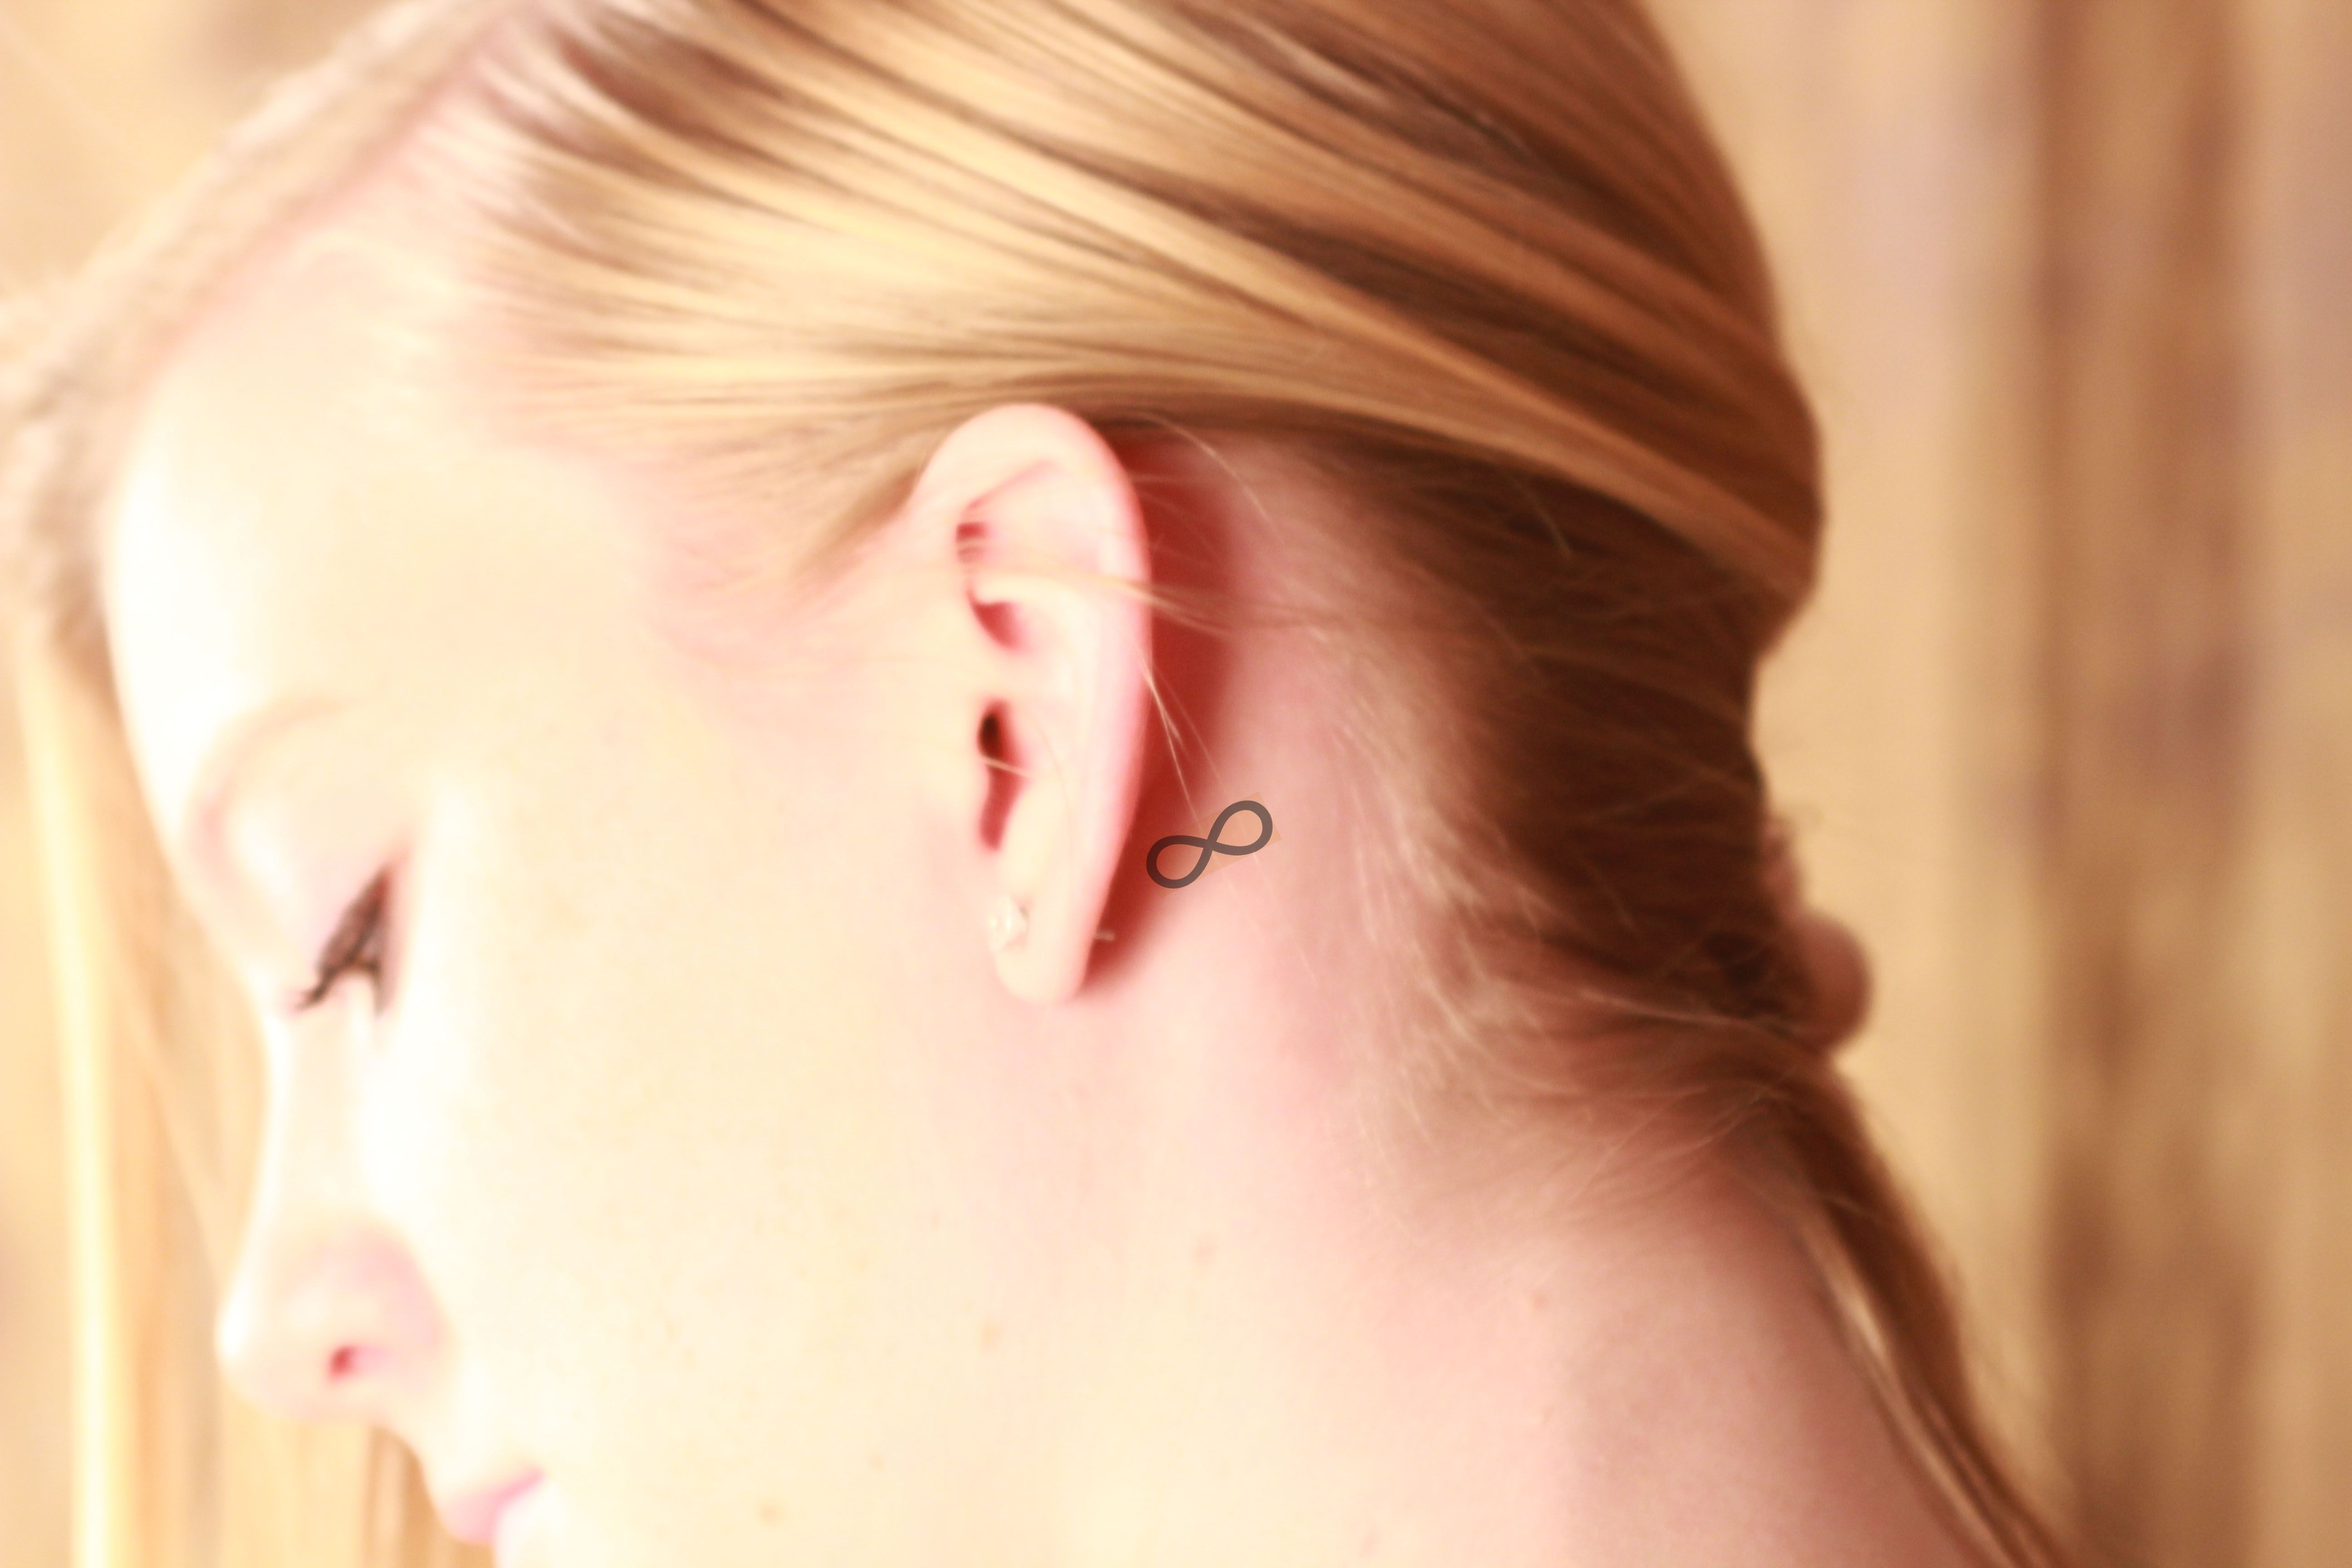 Ideas For Tattoos Behind The Ear - Infinity tattoo behind ear tattoobite com